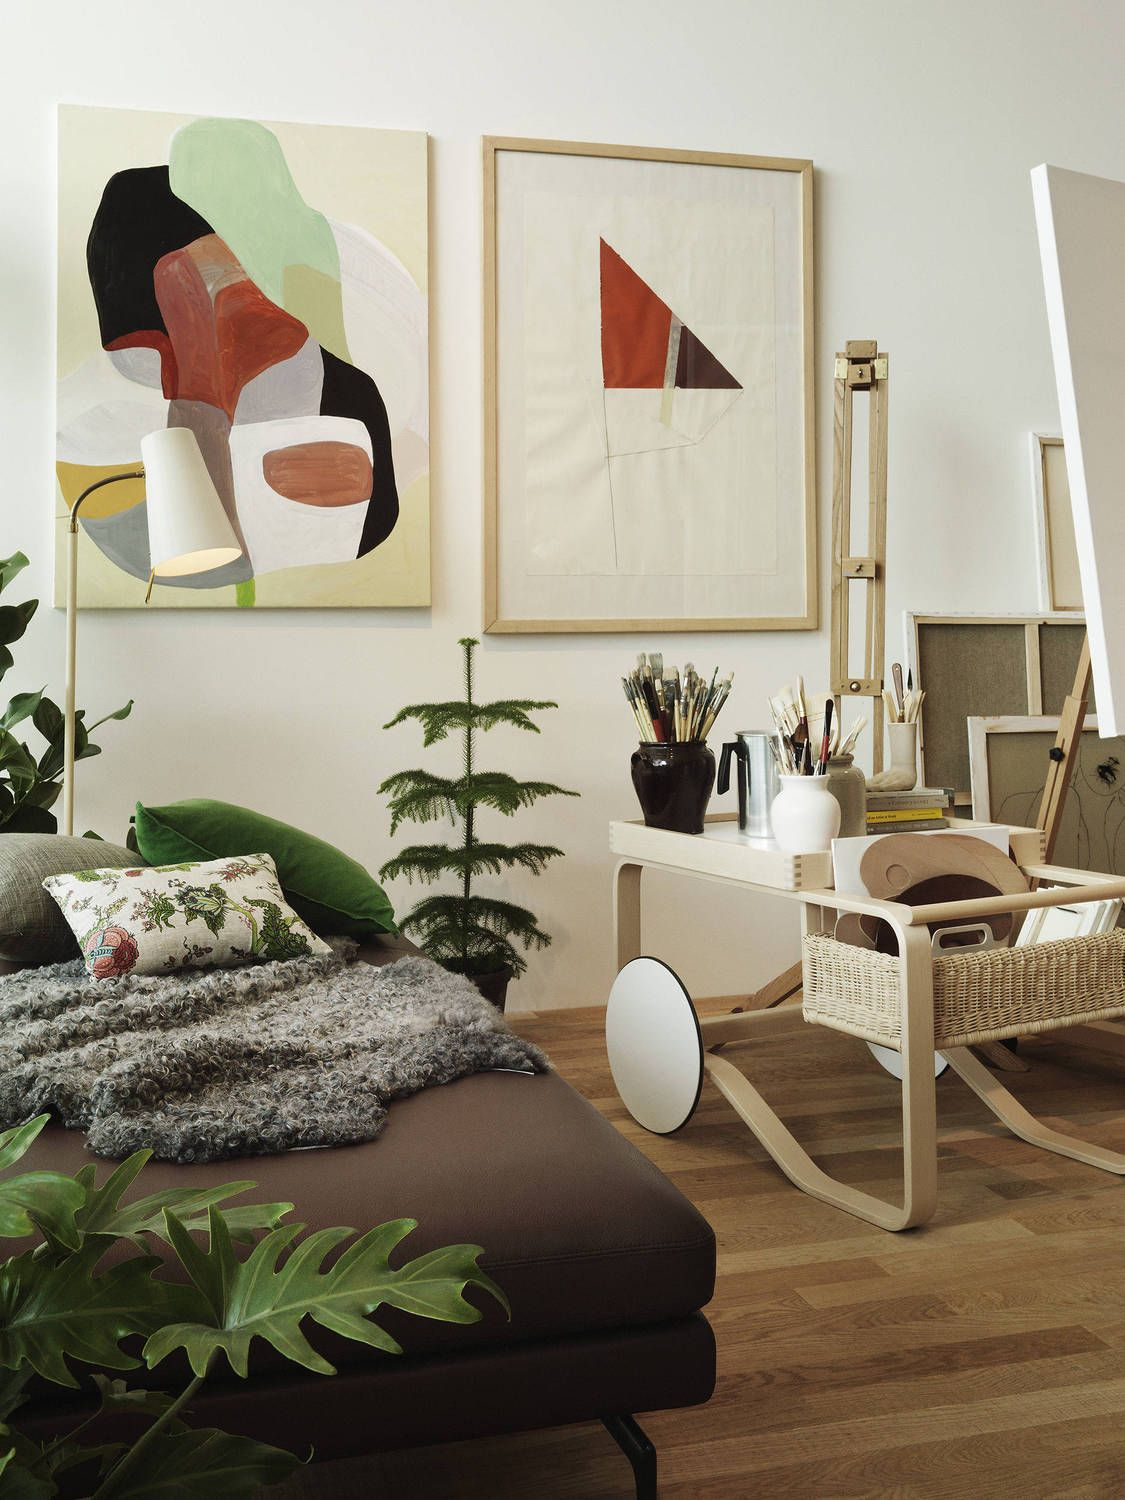 Homes that reflect the character of their owners albeit imaginary ones studio ilse vitra artek vitrahaus